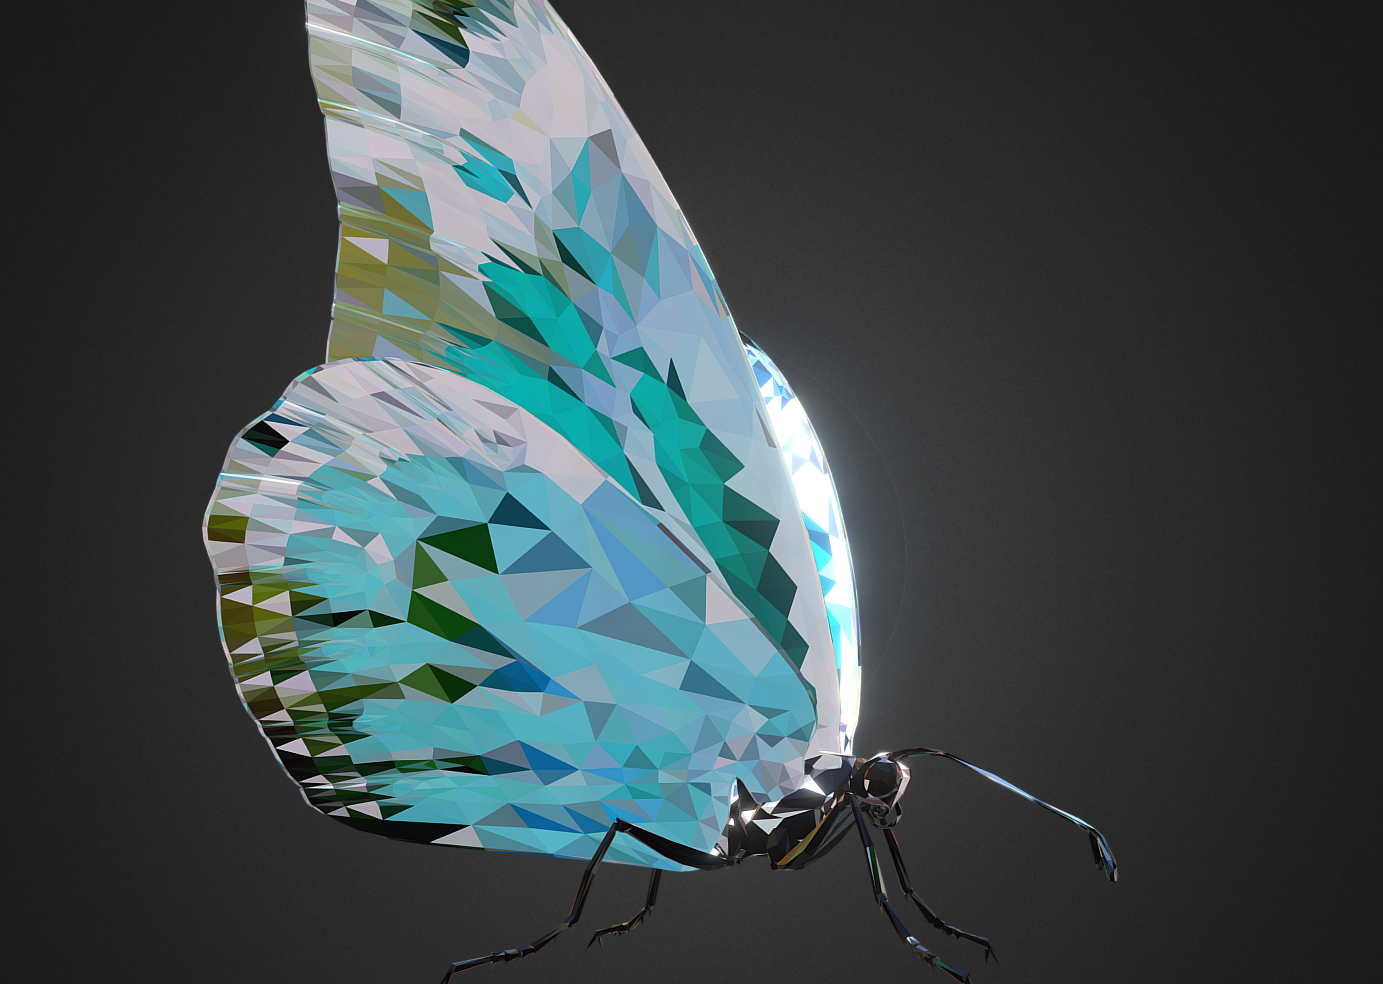 Batterfly Teal Low Polygon Art Insect